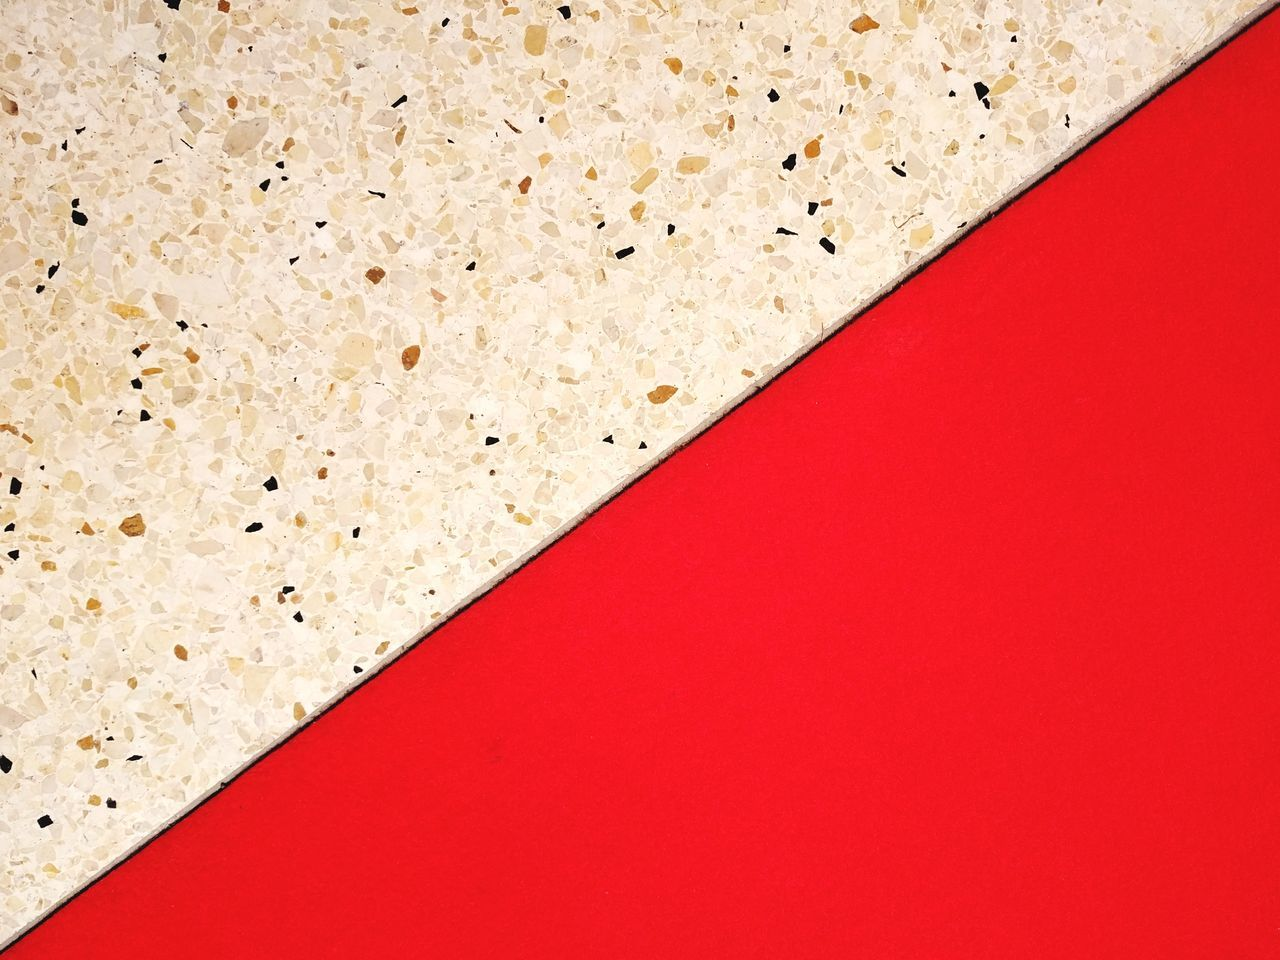 Red No People Built Structure Full Frame Day Outdoors Architecture Close-up Backgrounds Red Carpet Abstract